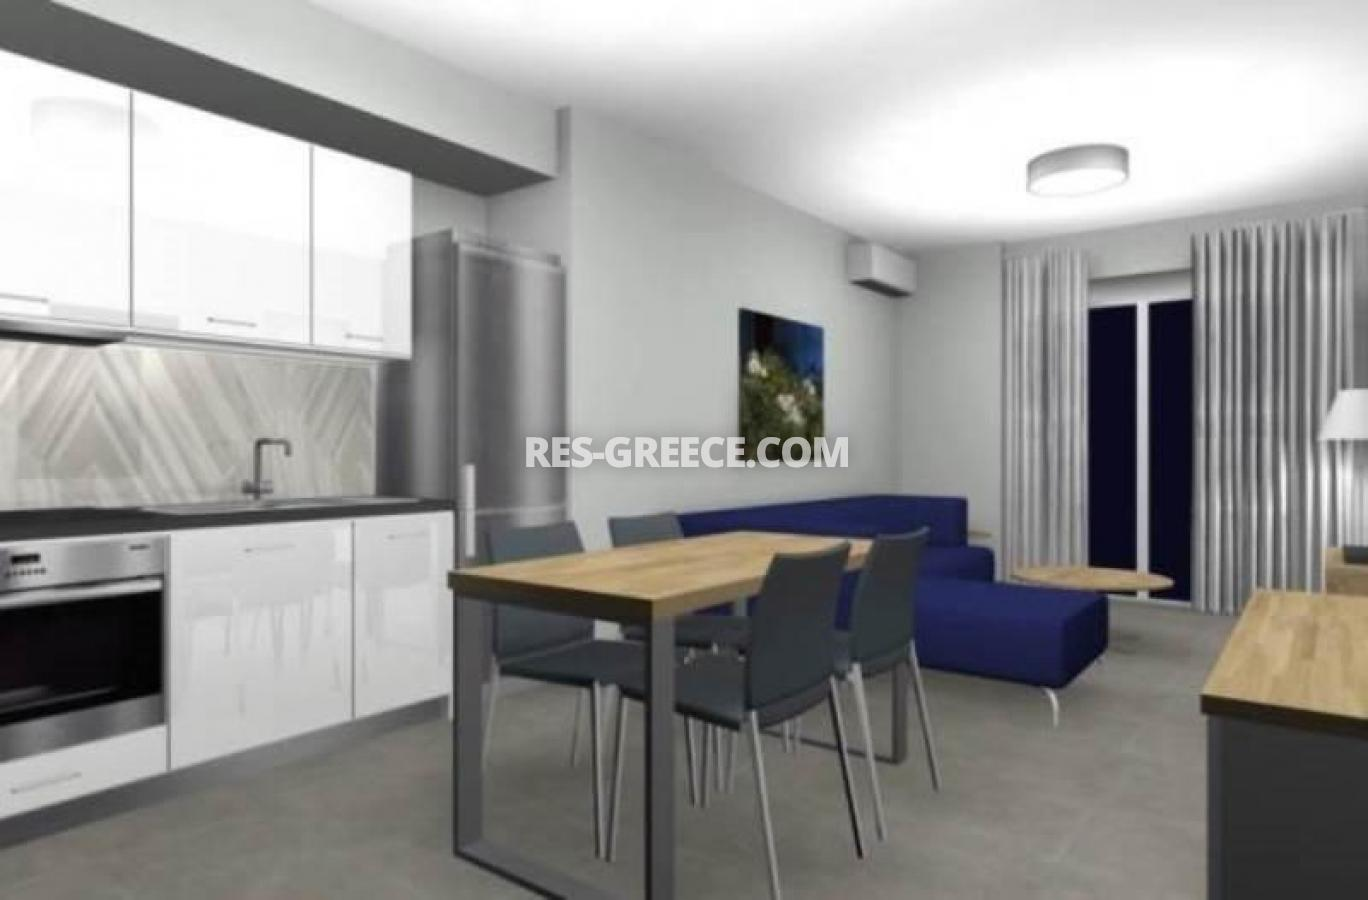 Nefeli aparts, Eastern Macedonia and Thraki, Greece - complex of apartments and studios for vacation rent - Photo 3